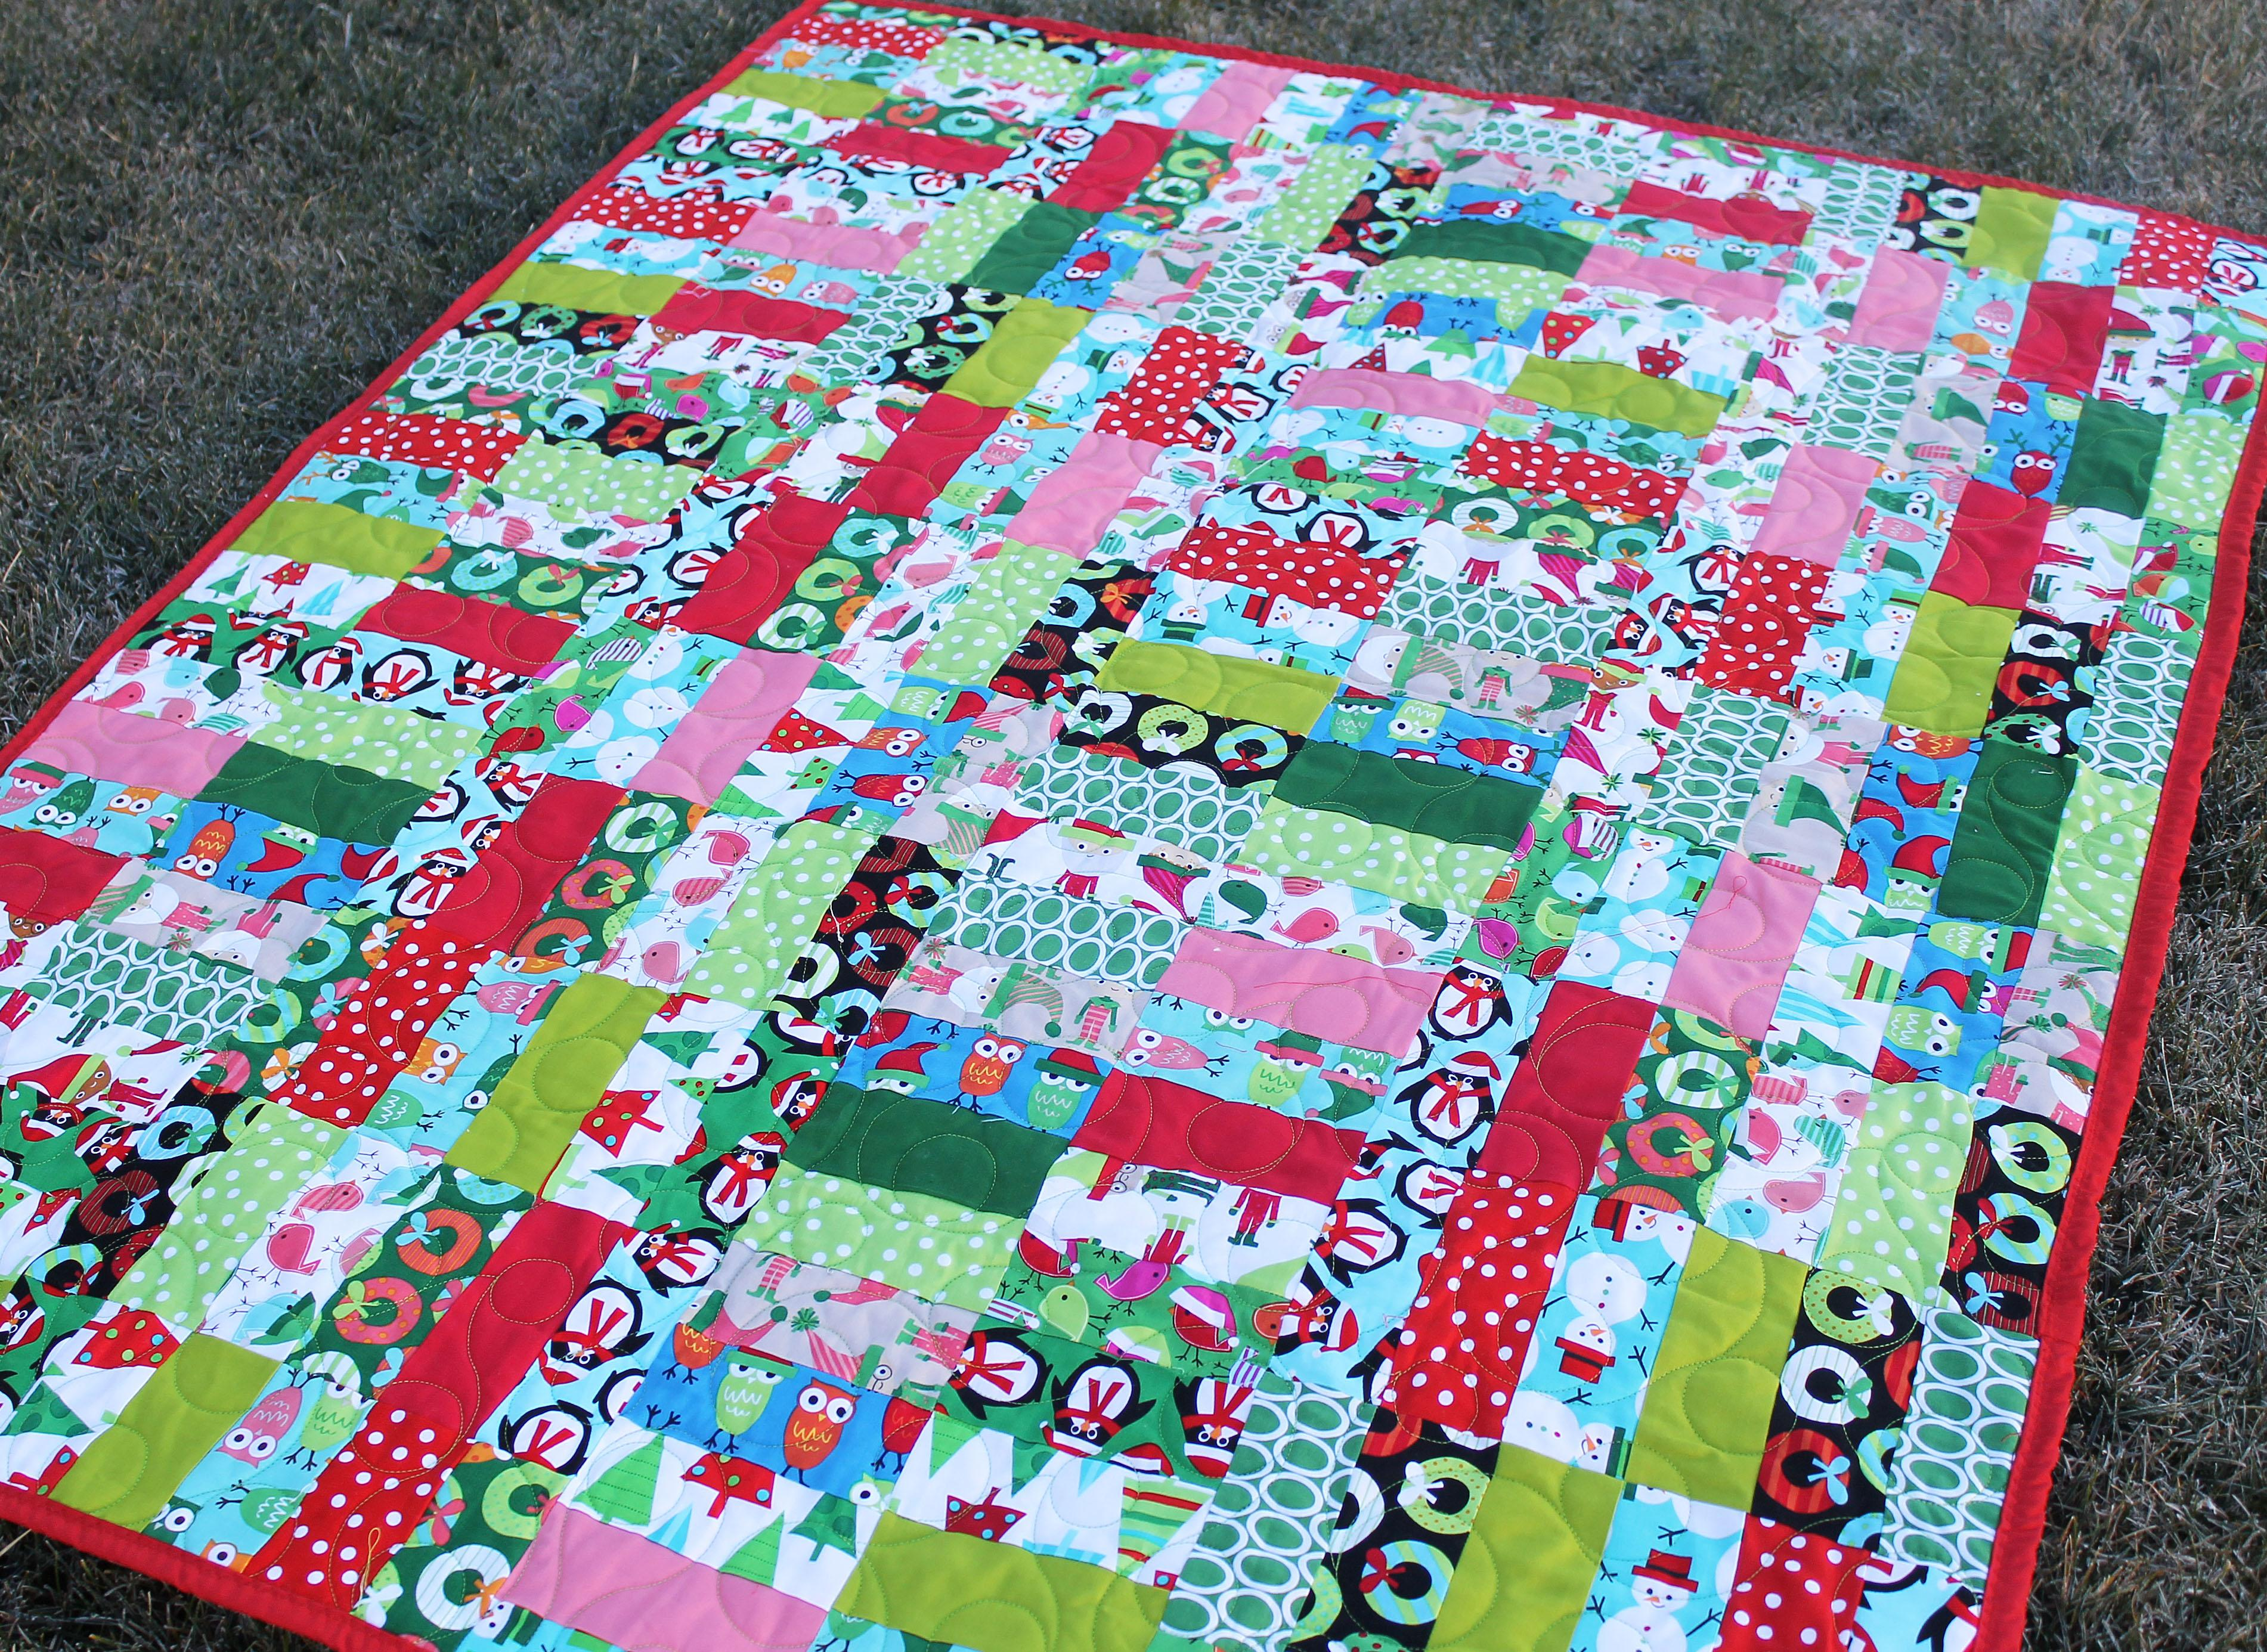 Picture of a jelly roll and jam quilt.